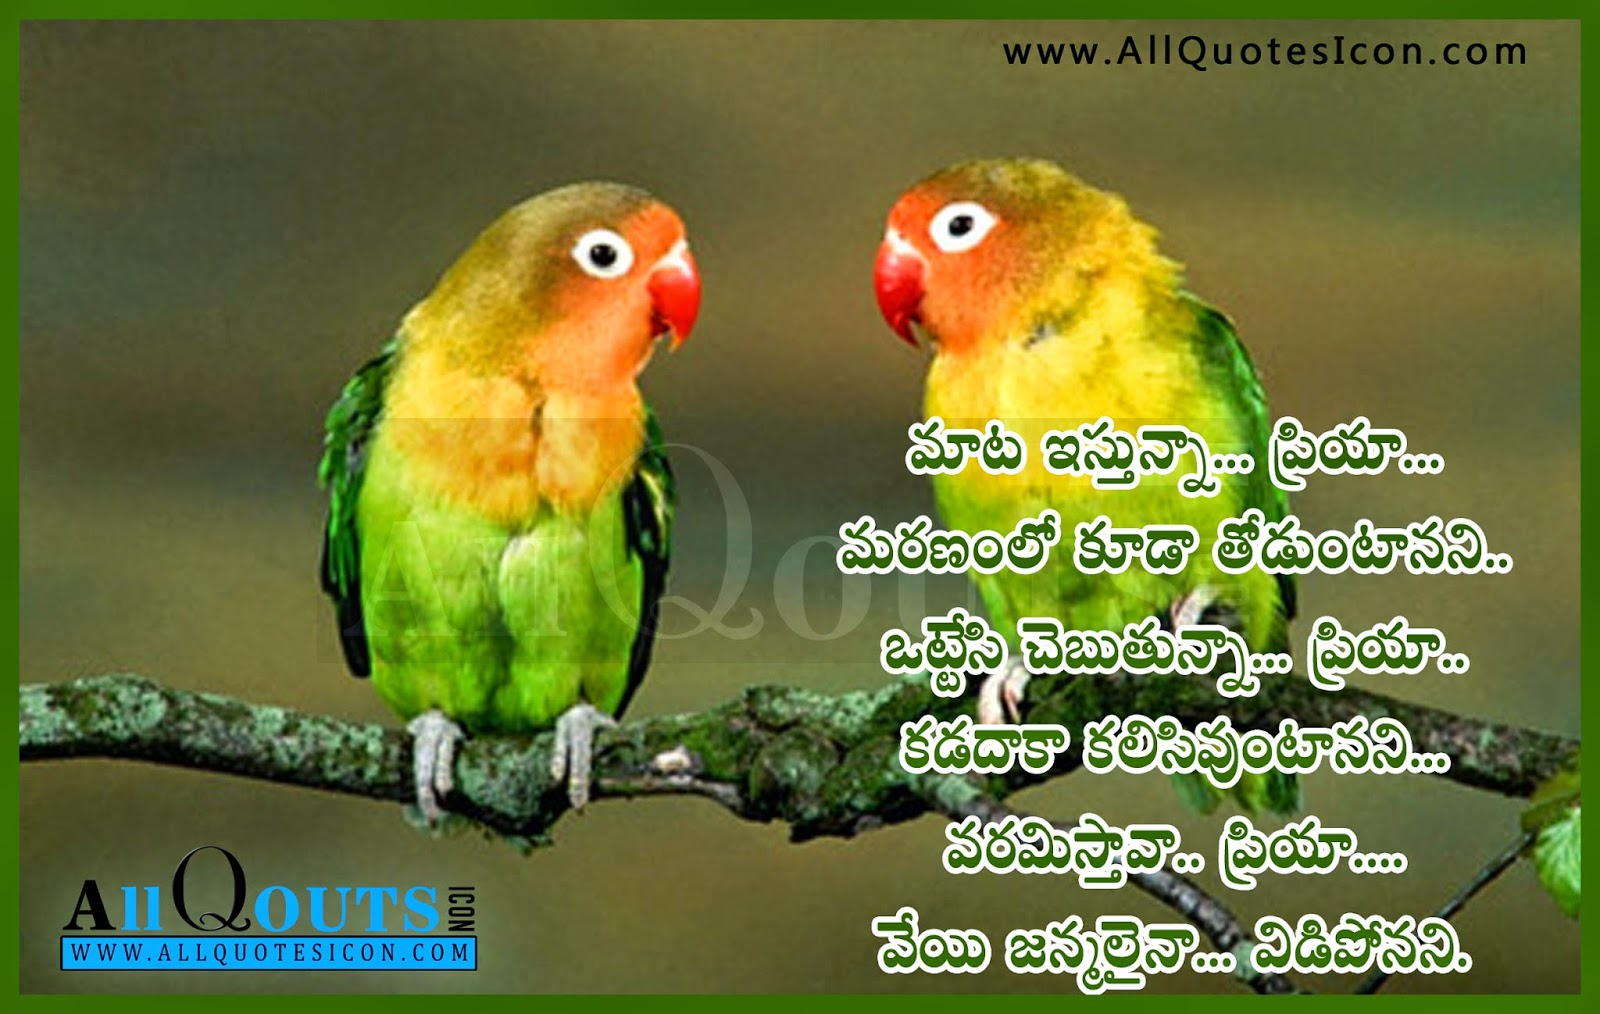 Telugu Love Quotes Delectable Telugu Love Quotes And Images  Www.allquotesicon  Telugu